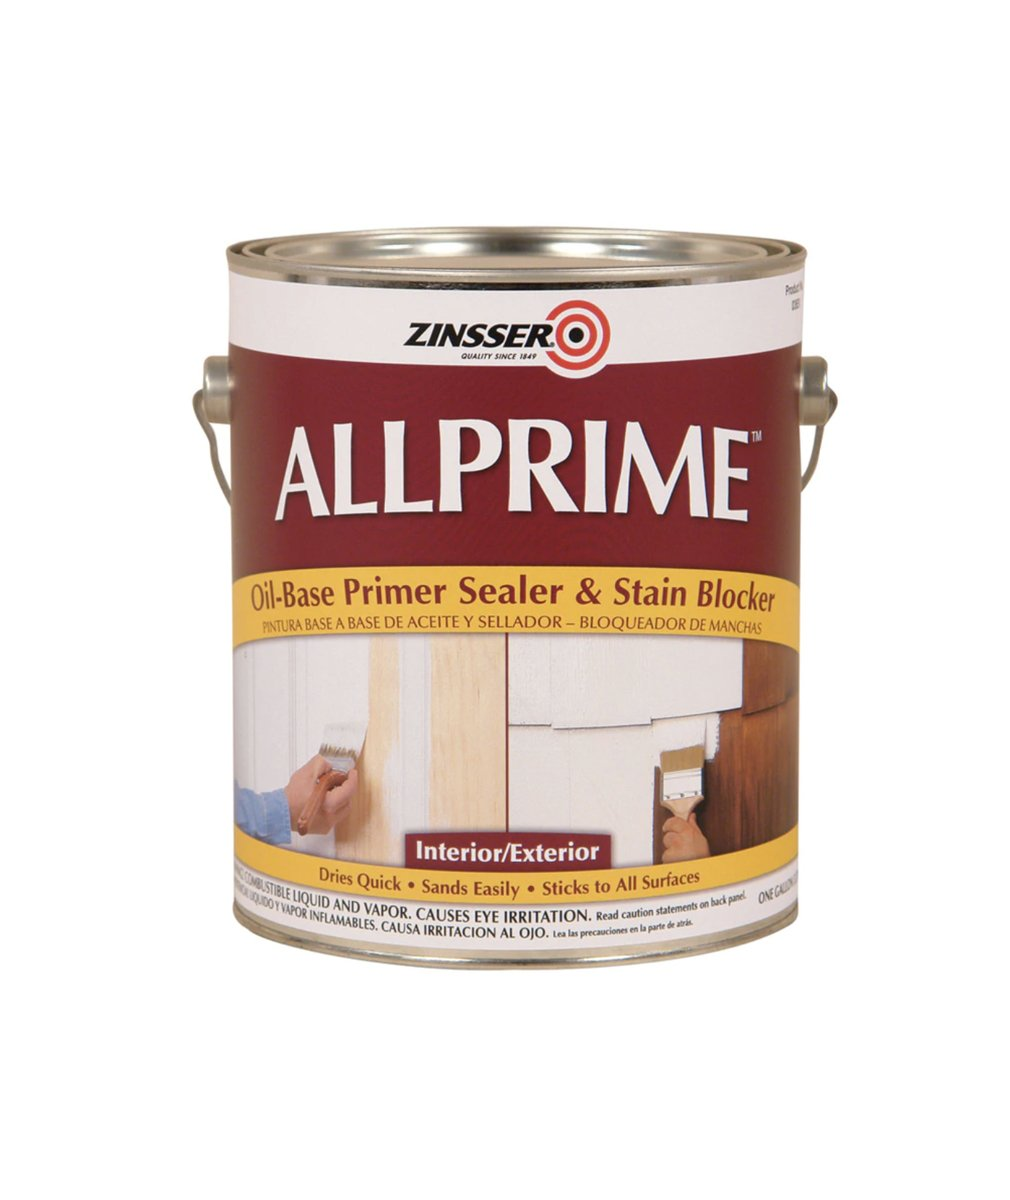 Allprime Interior & Exterior oil-based Primer, available at Mallory Paint in WA & ID.